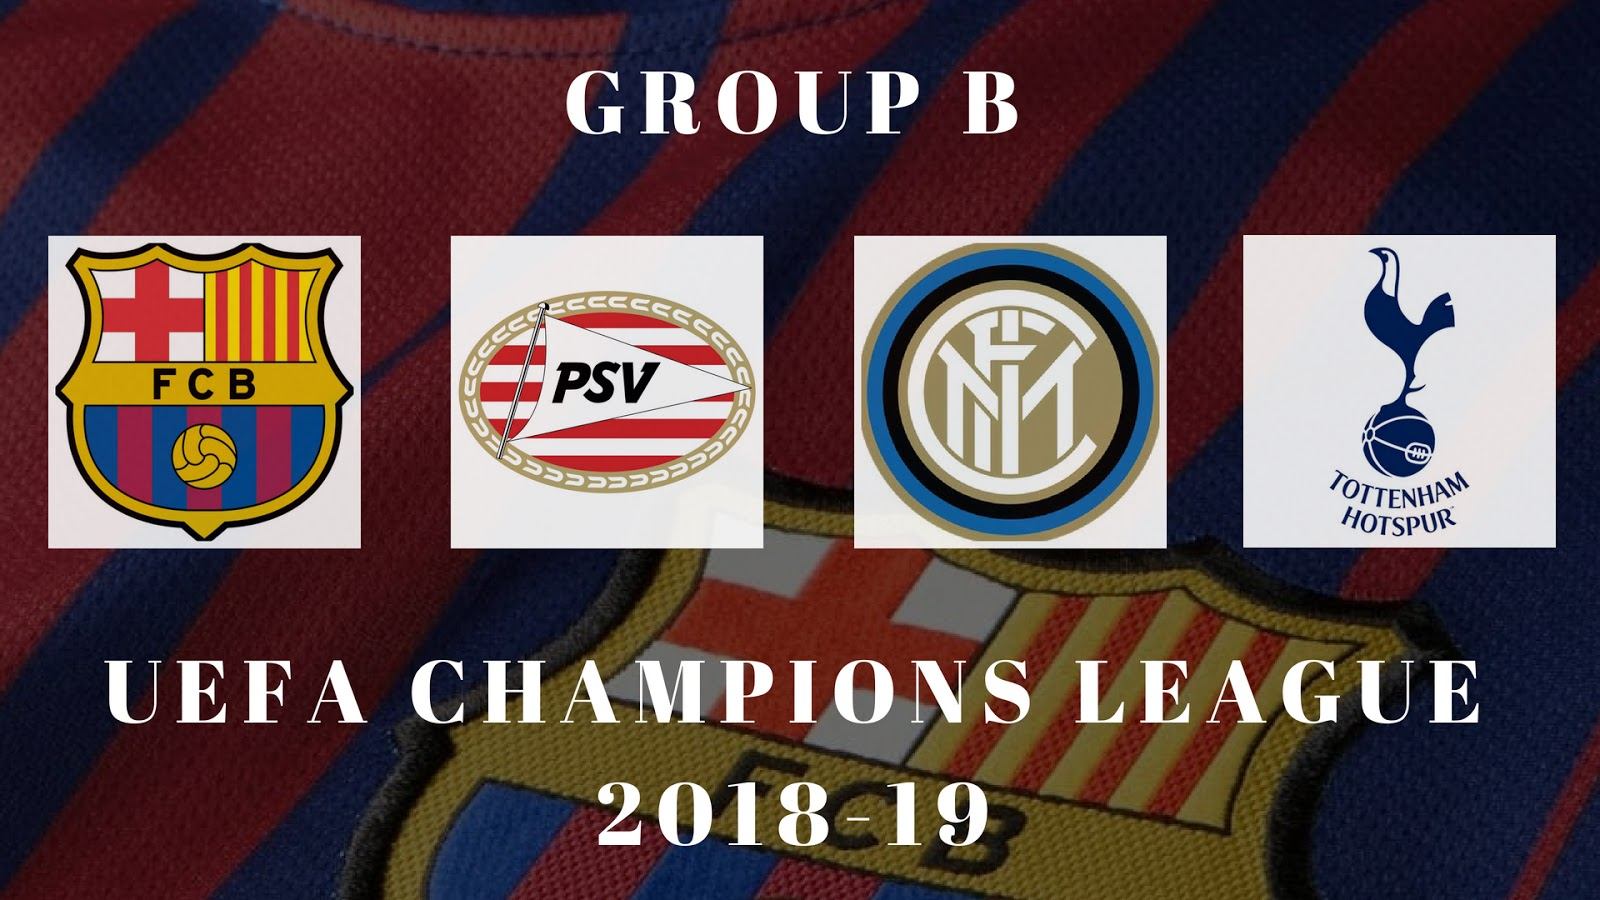 FC Barcelona to face Inter, PSV and Tottenham in Group B of UEFA Champions League 2018-19 #fcbarcelona